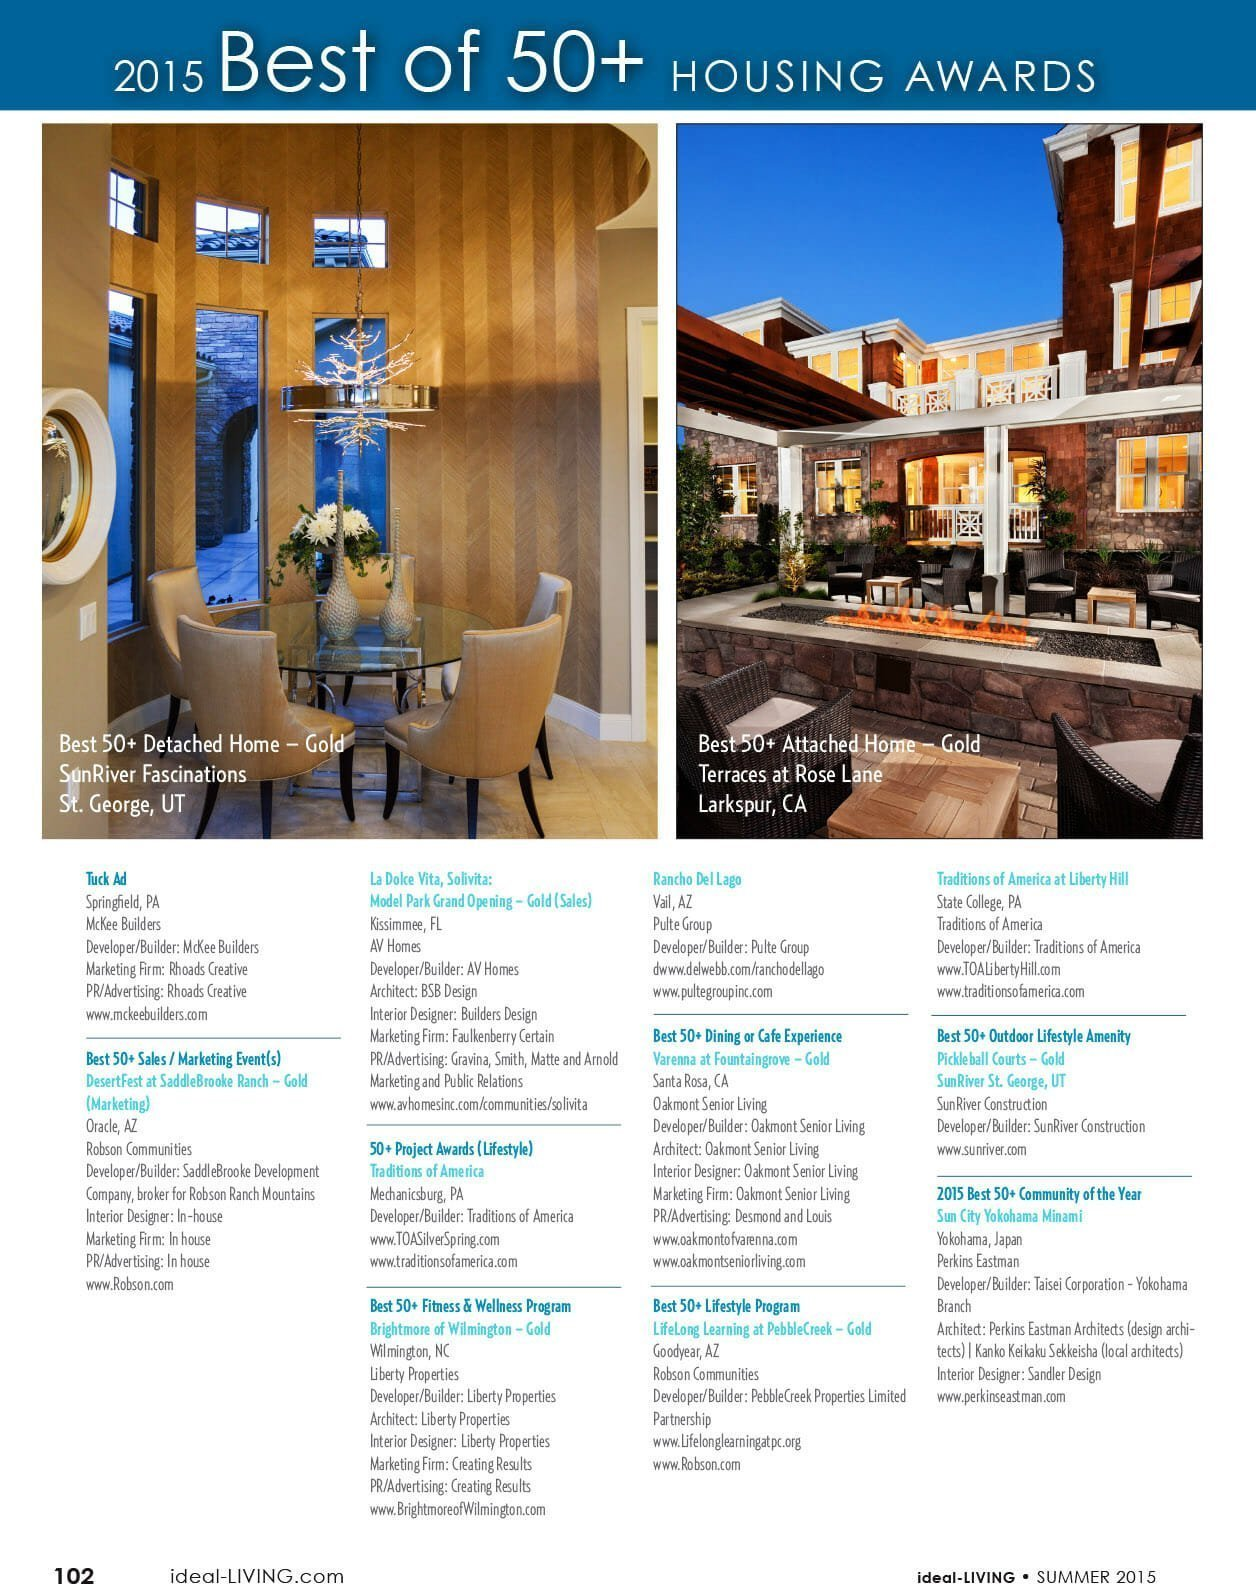 2015 Best of 50+ housing awards page 7